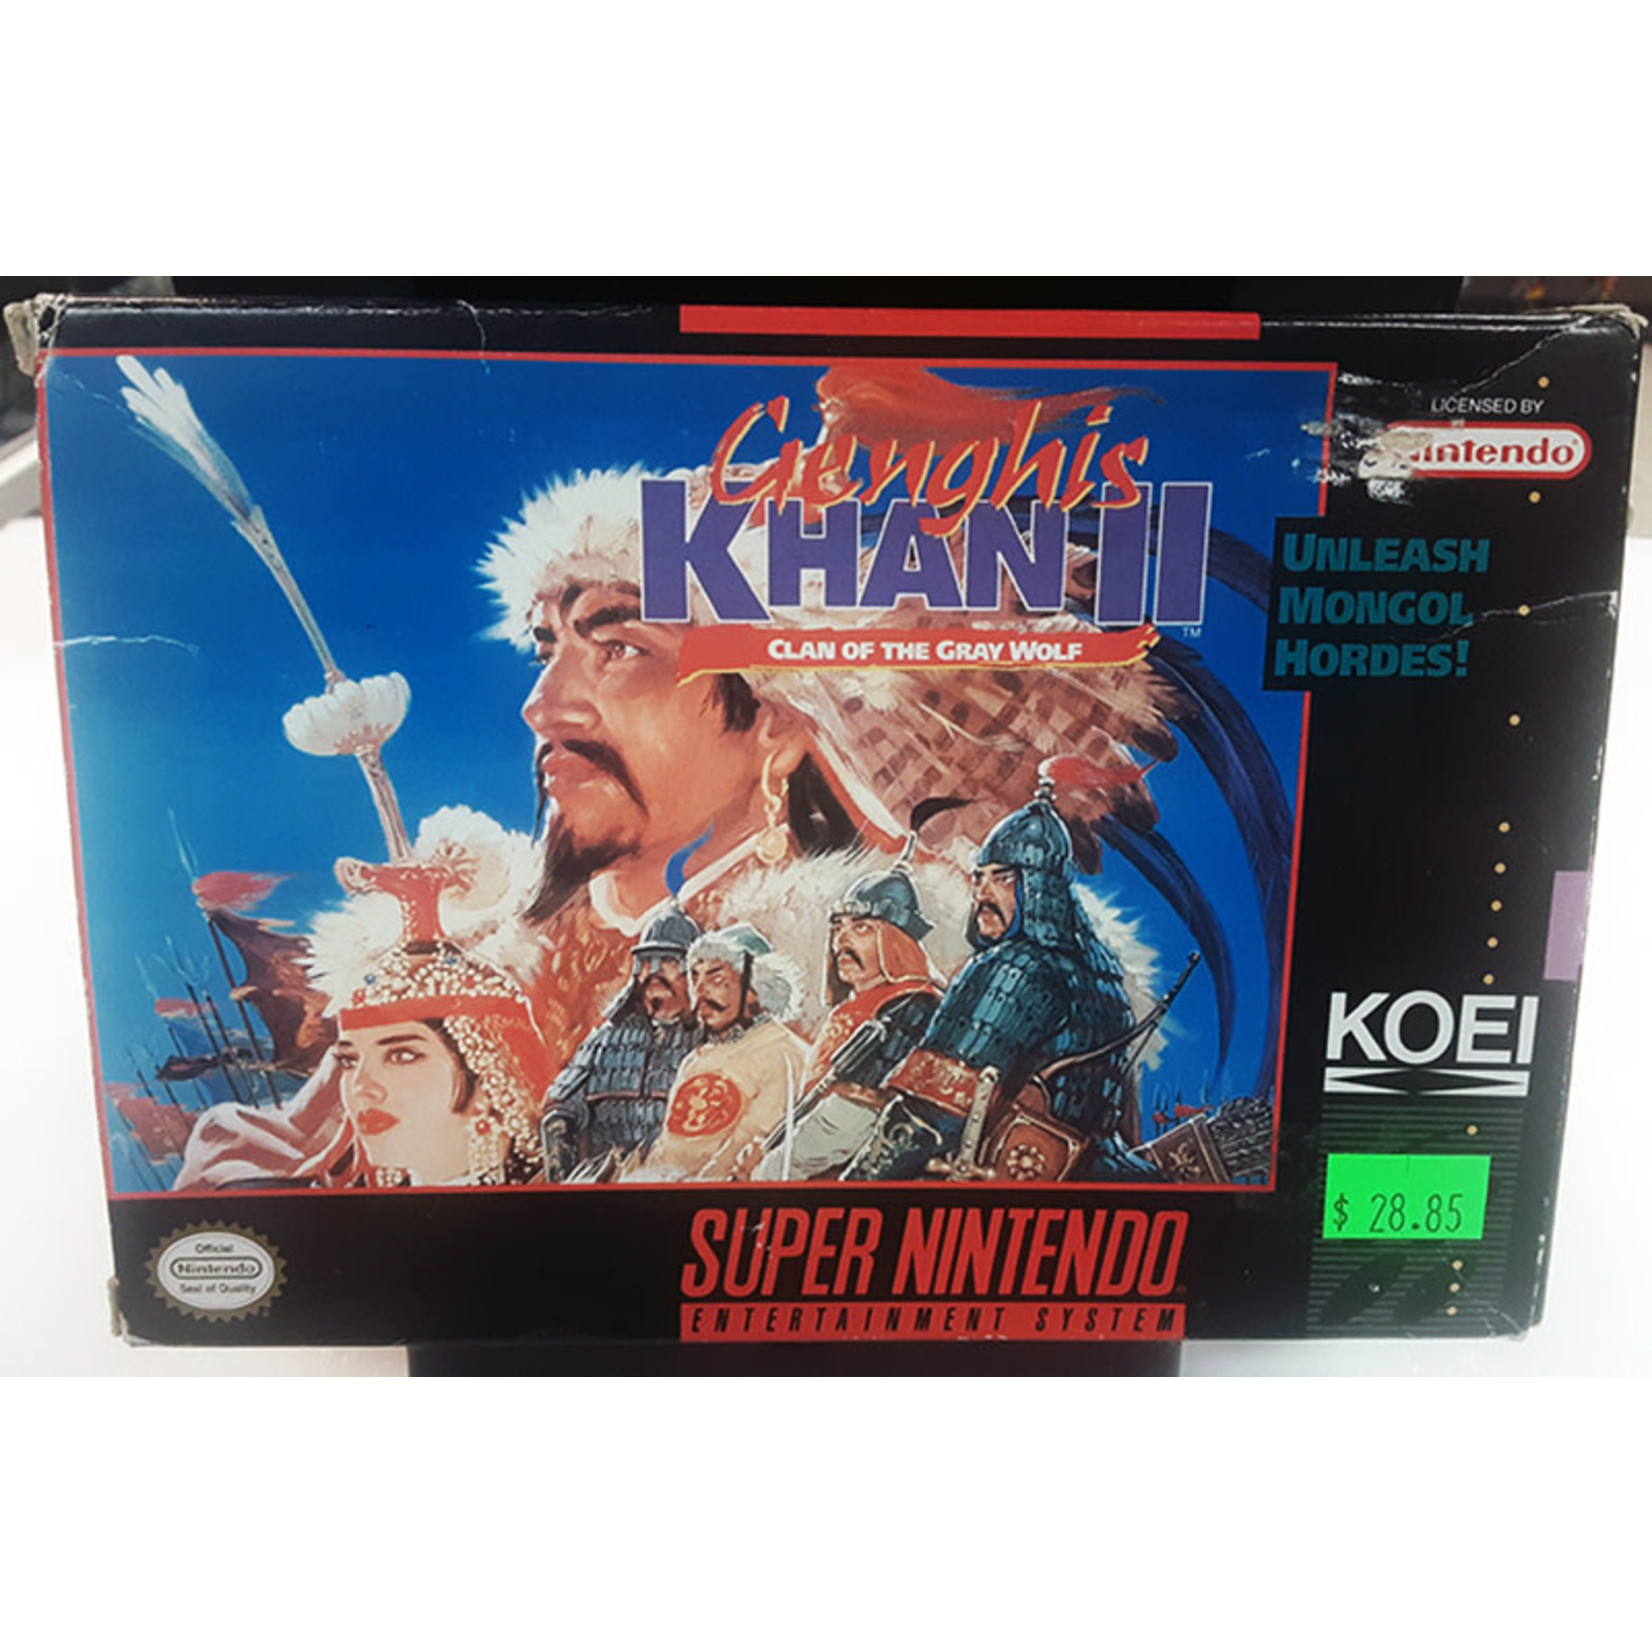 snesu-Genghis Khan 2: Clan of the Gay Wolf (in box, incomplete)